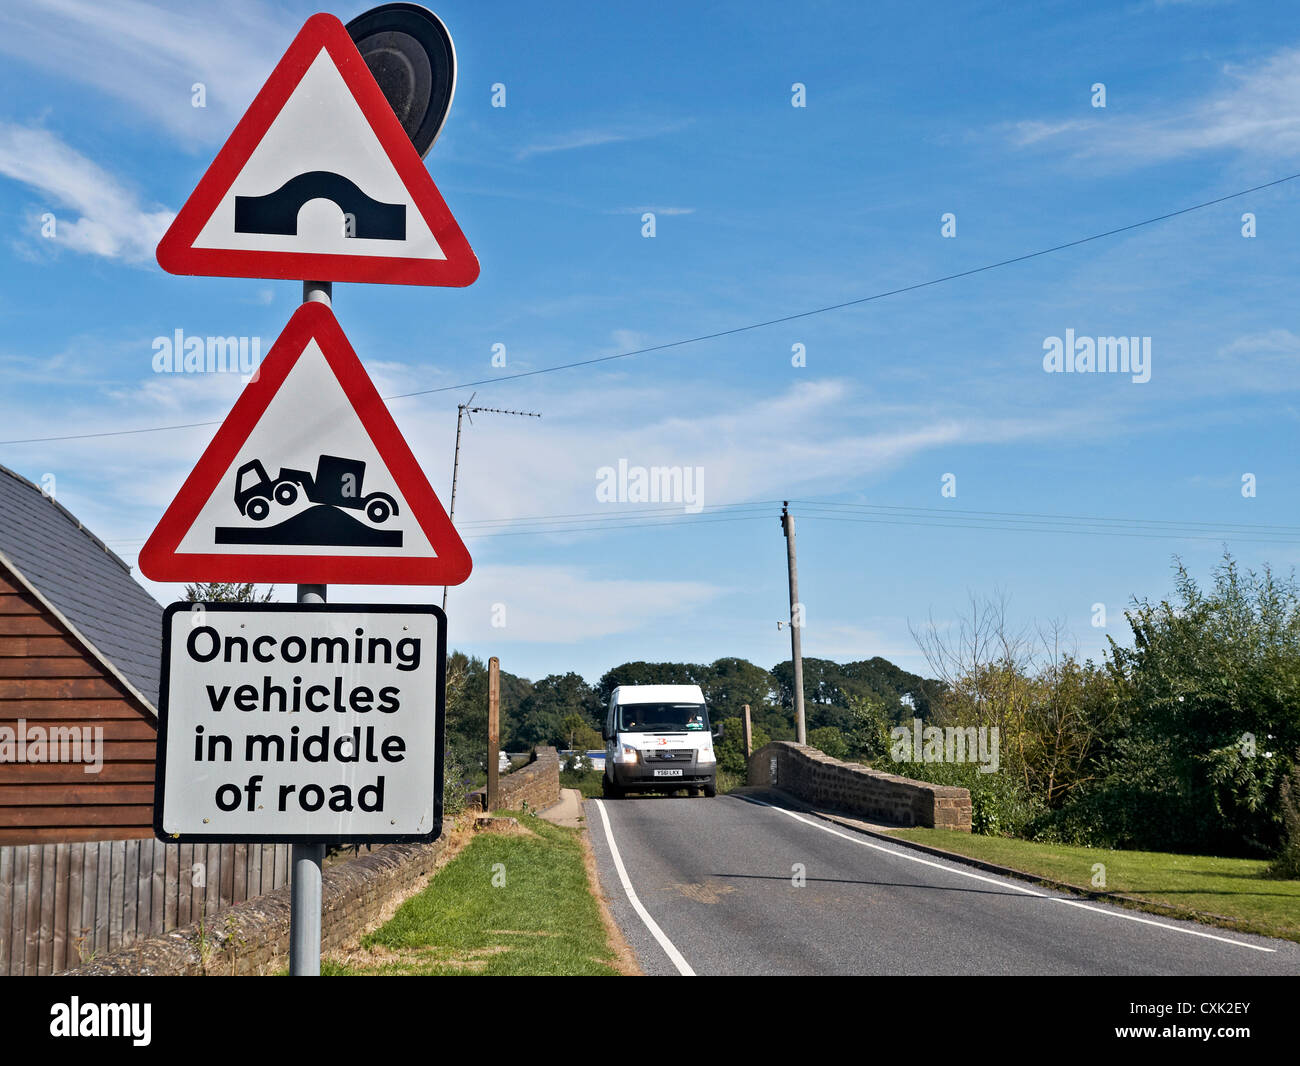 UK road sign warning of the danger of oncoming vehicles in the middle of the road. Oxfordshire England Europe - Stock Image